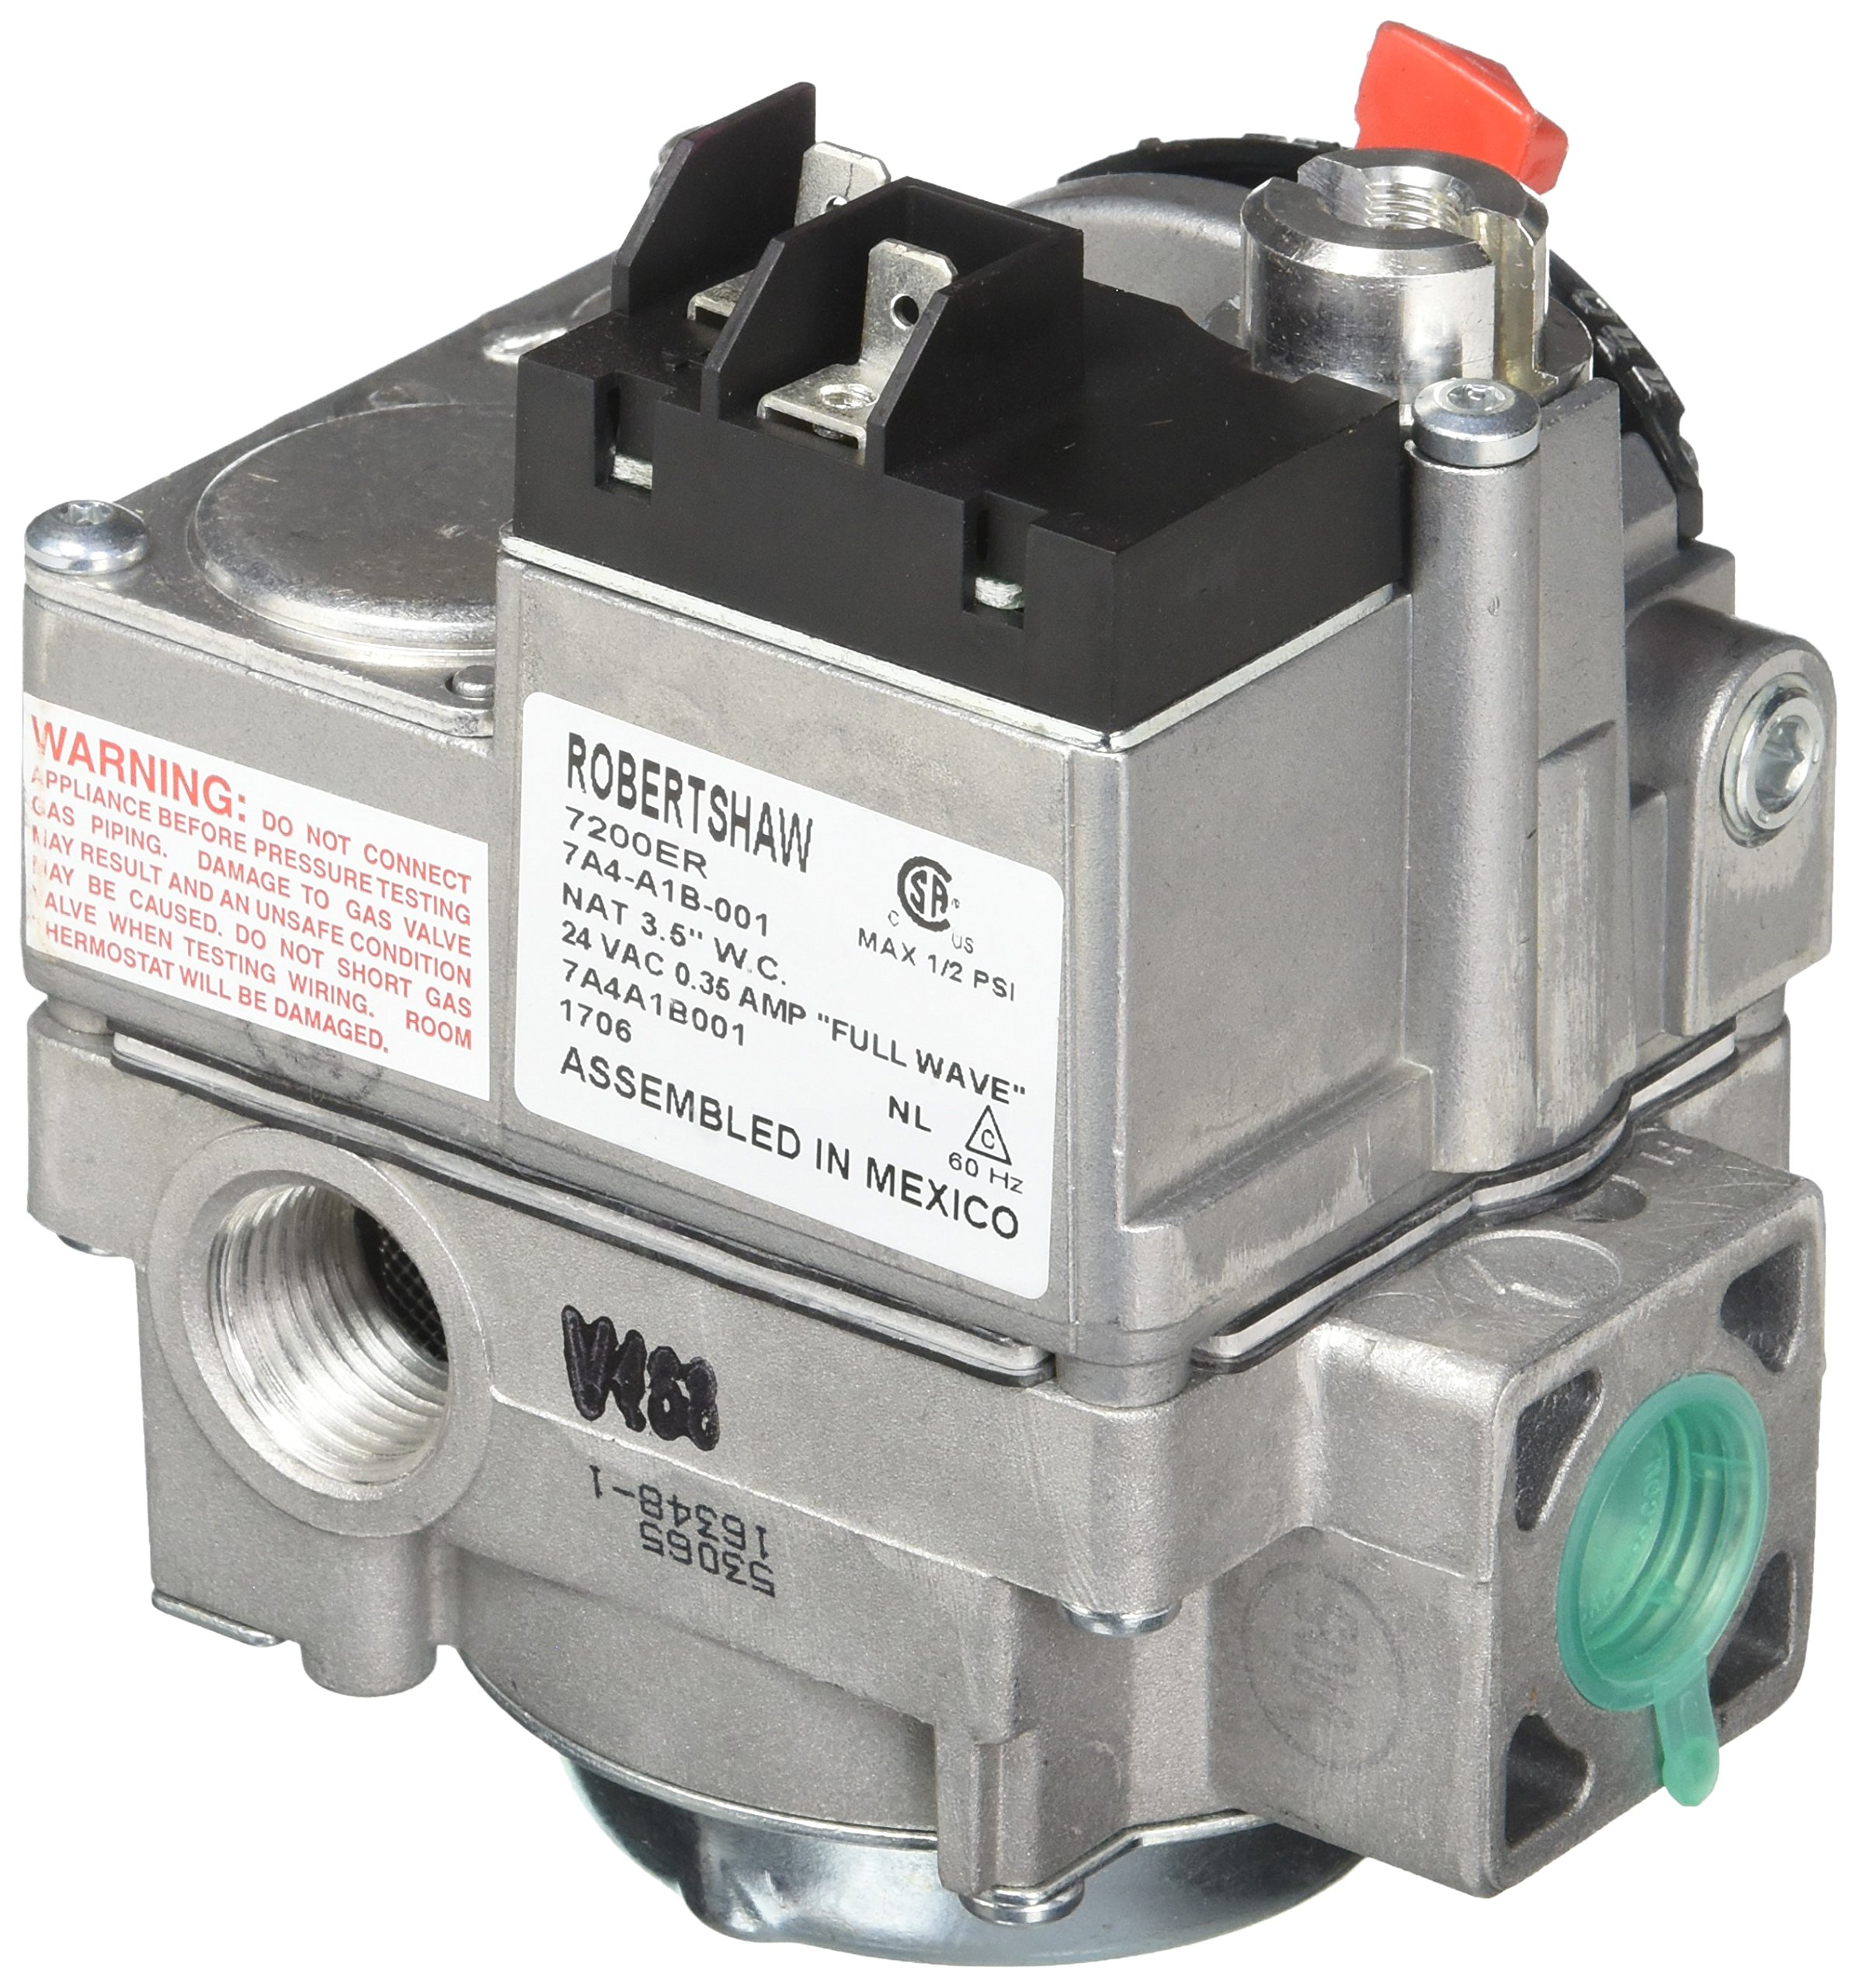 Robertshaw 720-402 Combination Dual Gas Valve With Side Taps by Robertshaw